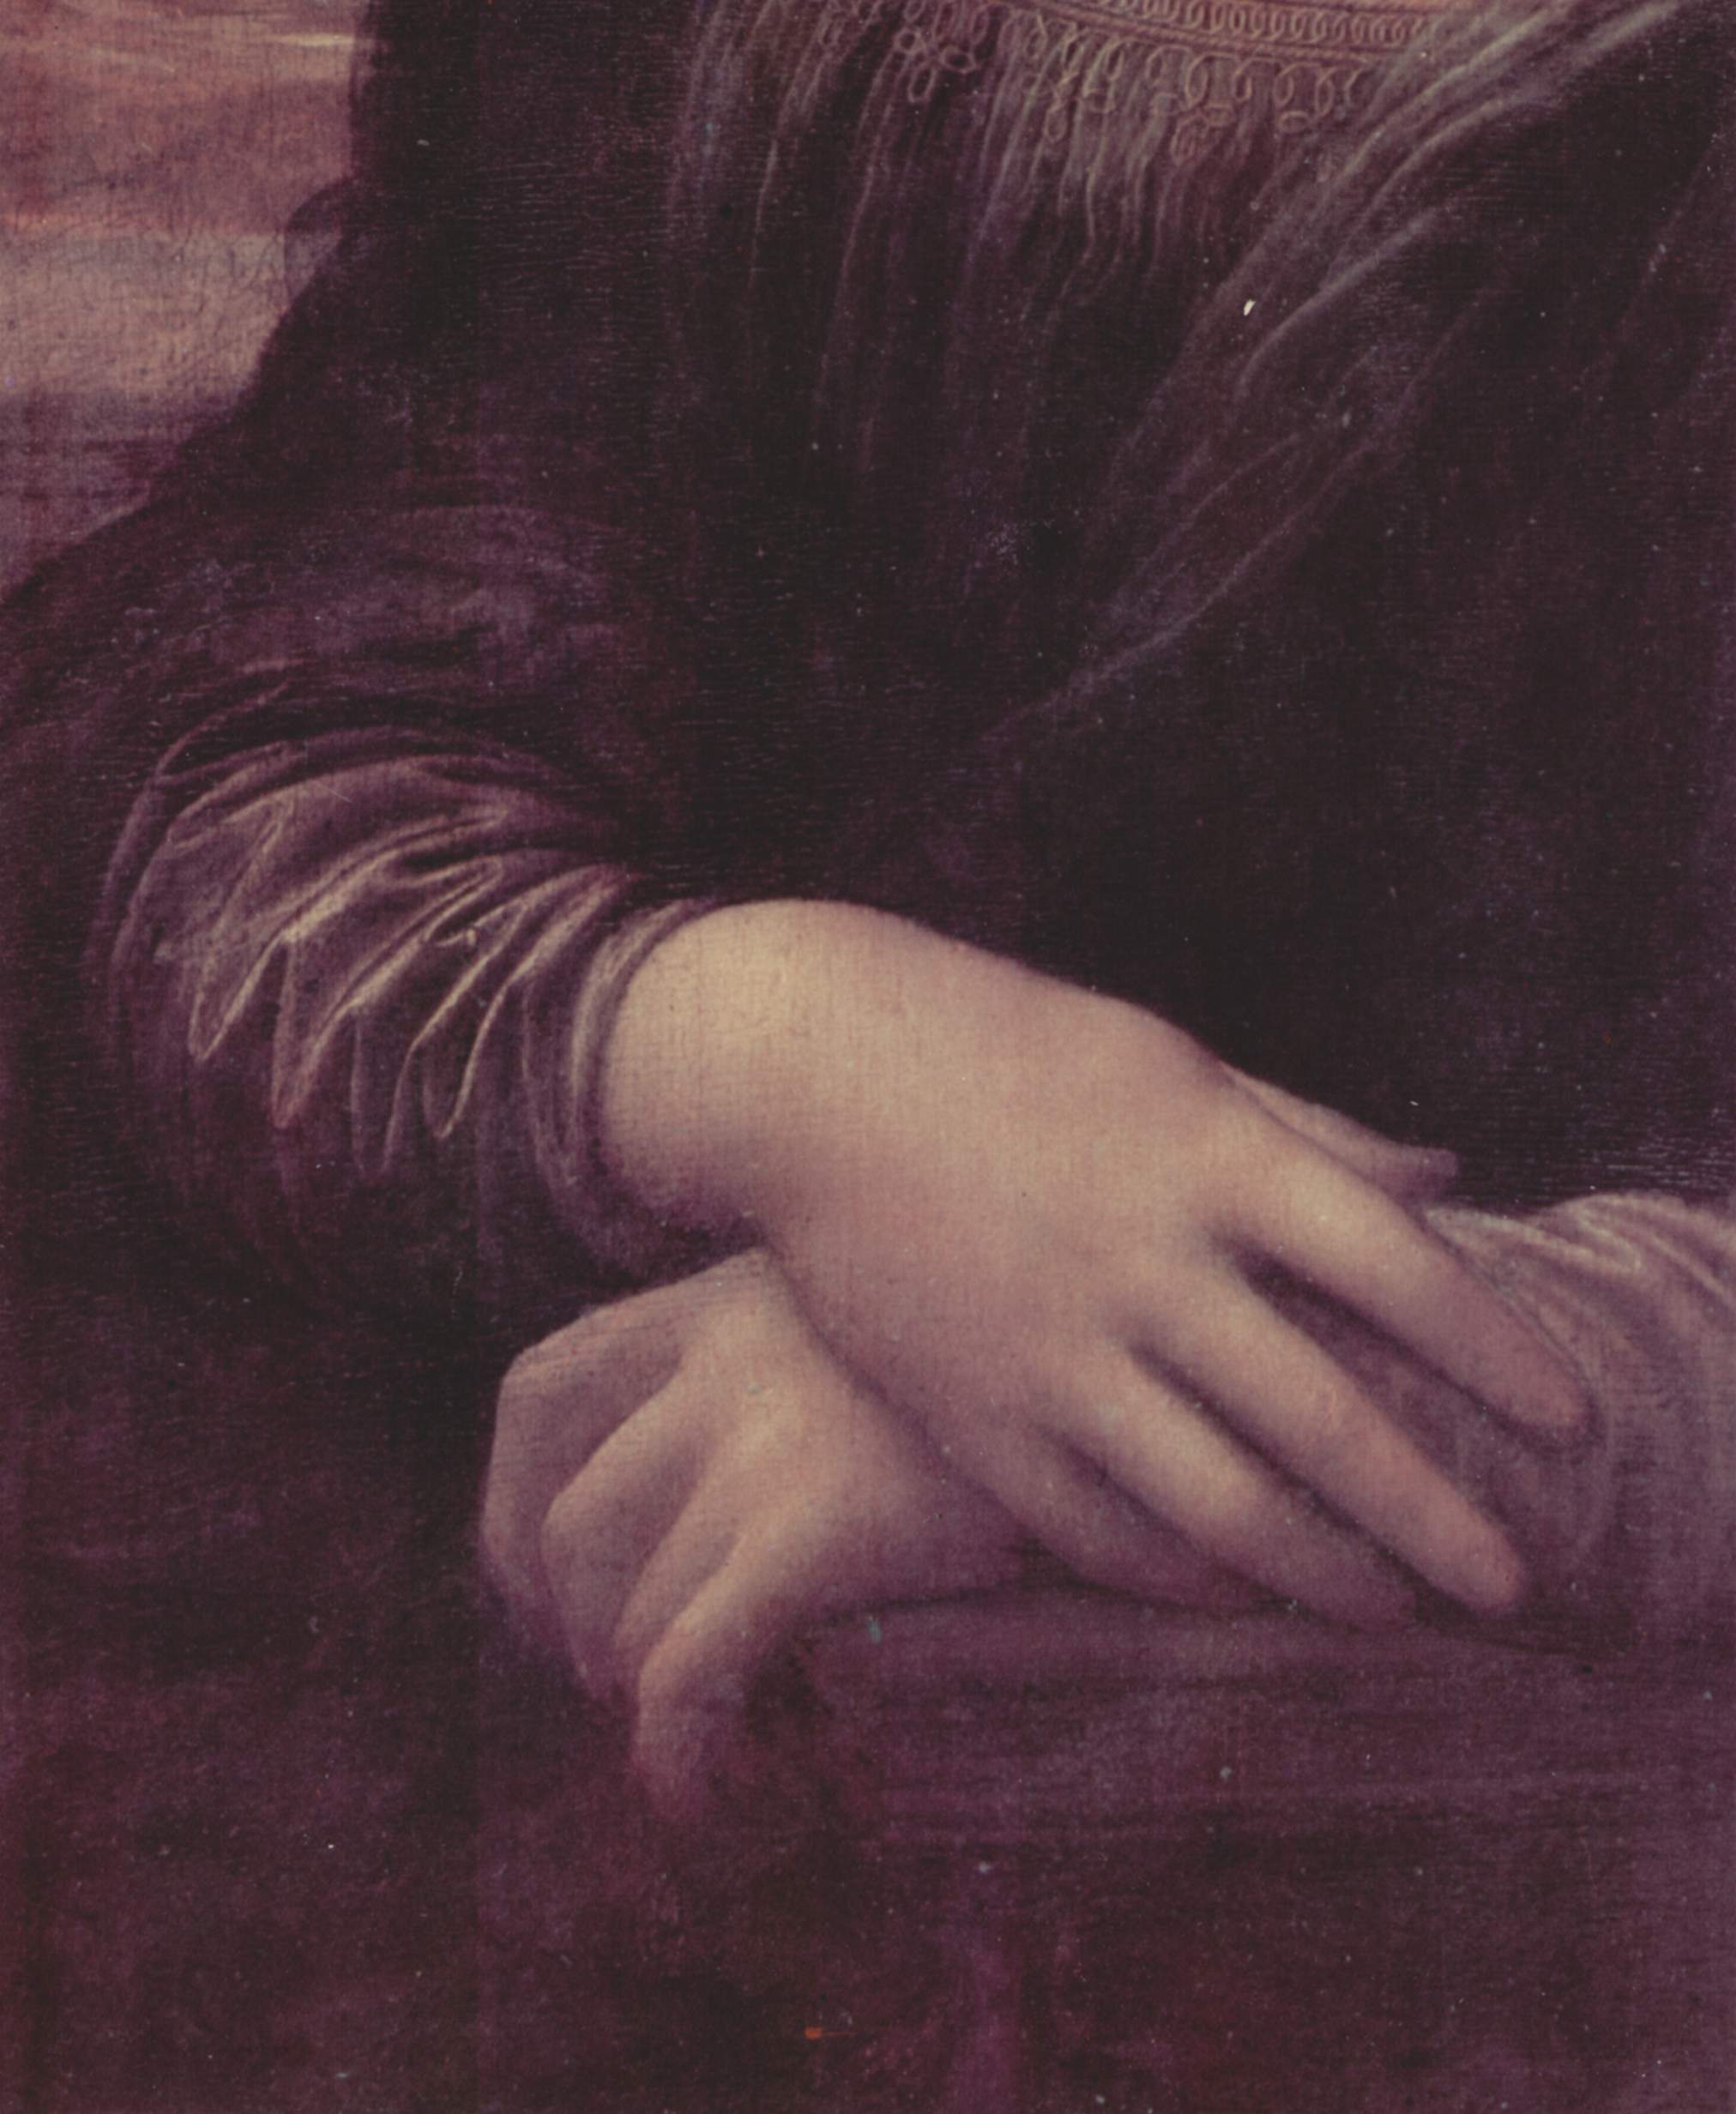 http://upload.wikimedia.org/wikipedia/commons/1/1e/Leonardo_da_Vinci_044.jpg